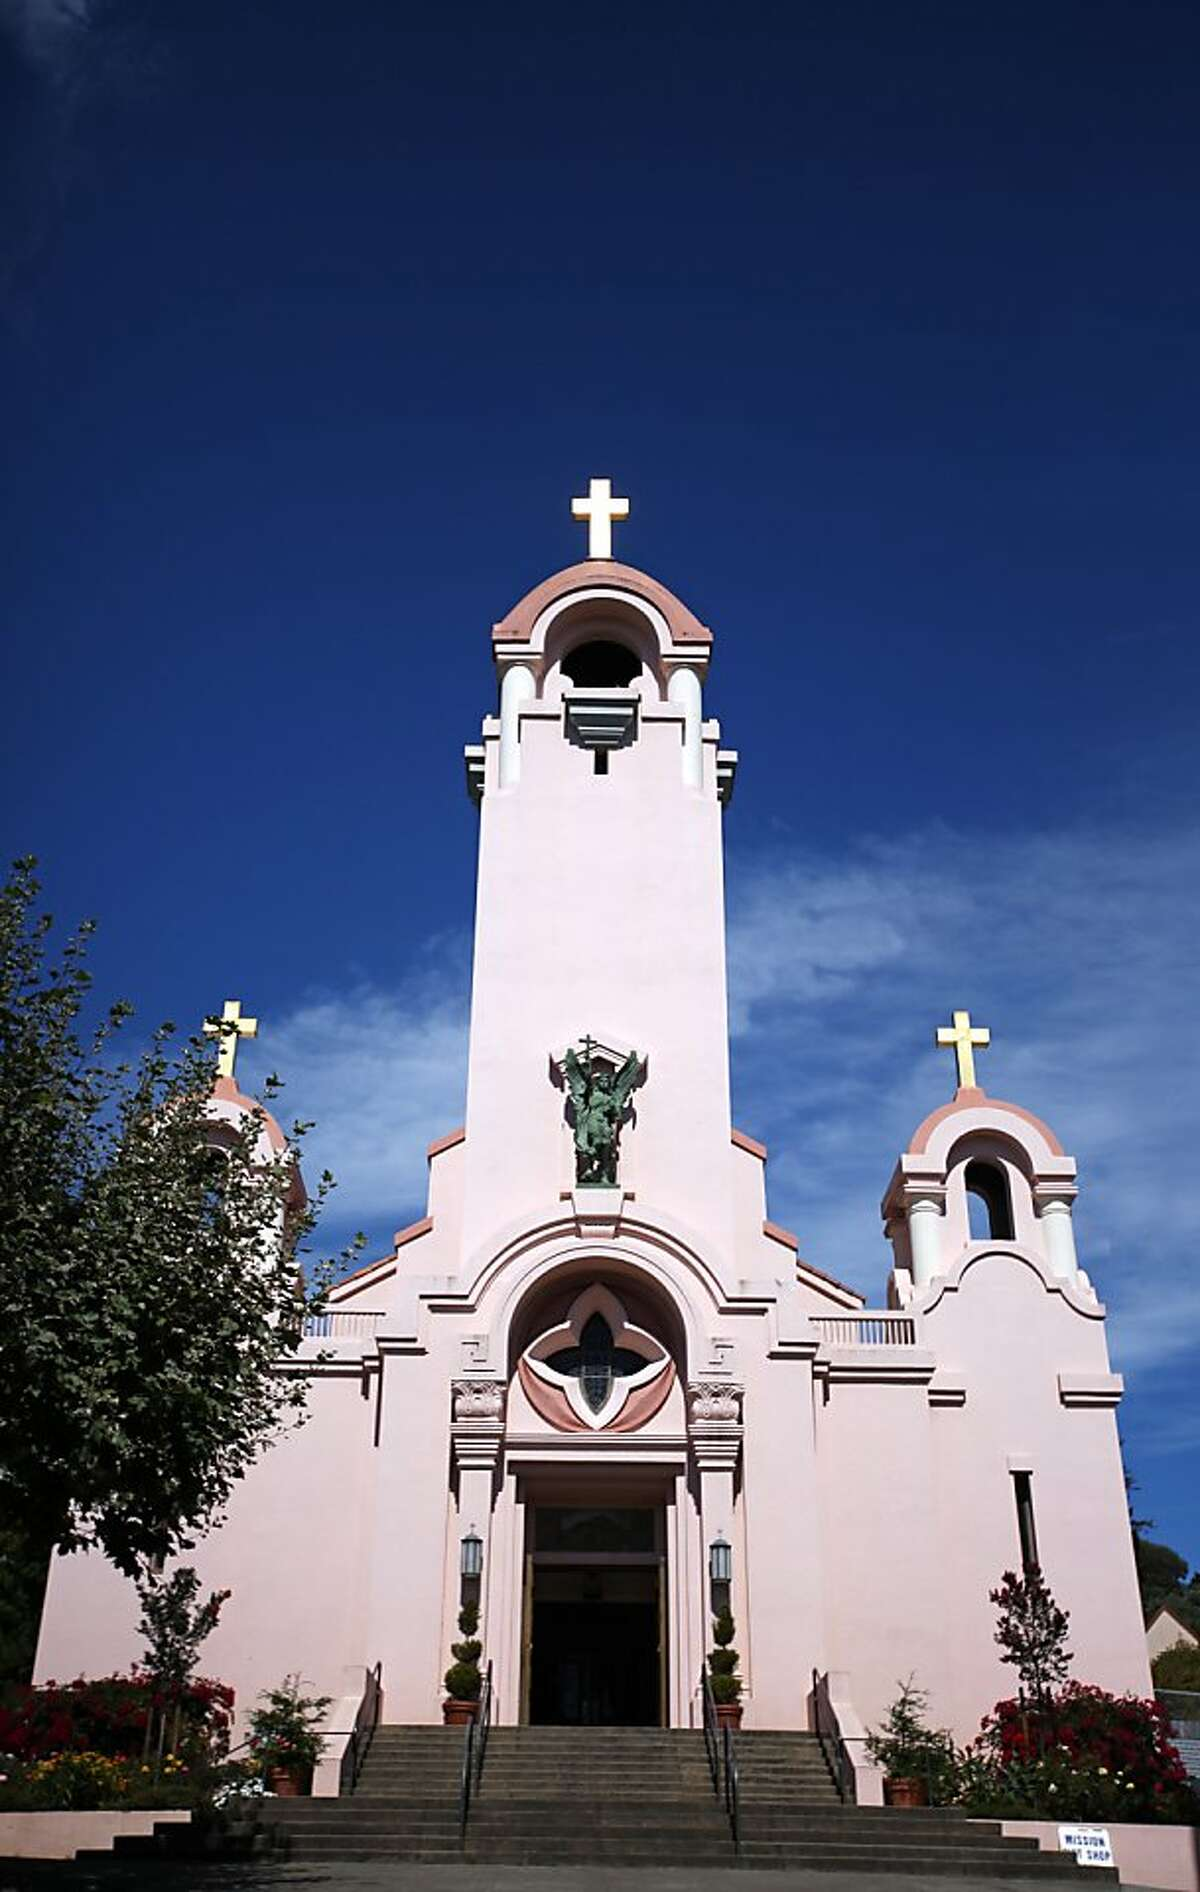 The bright afternoon sun reflects brilliantly off the cross on the highest steeple at Mission San Rafael Arcangel in San Rafael, CALIF on Sept. 24, 2011.